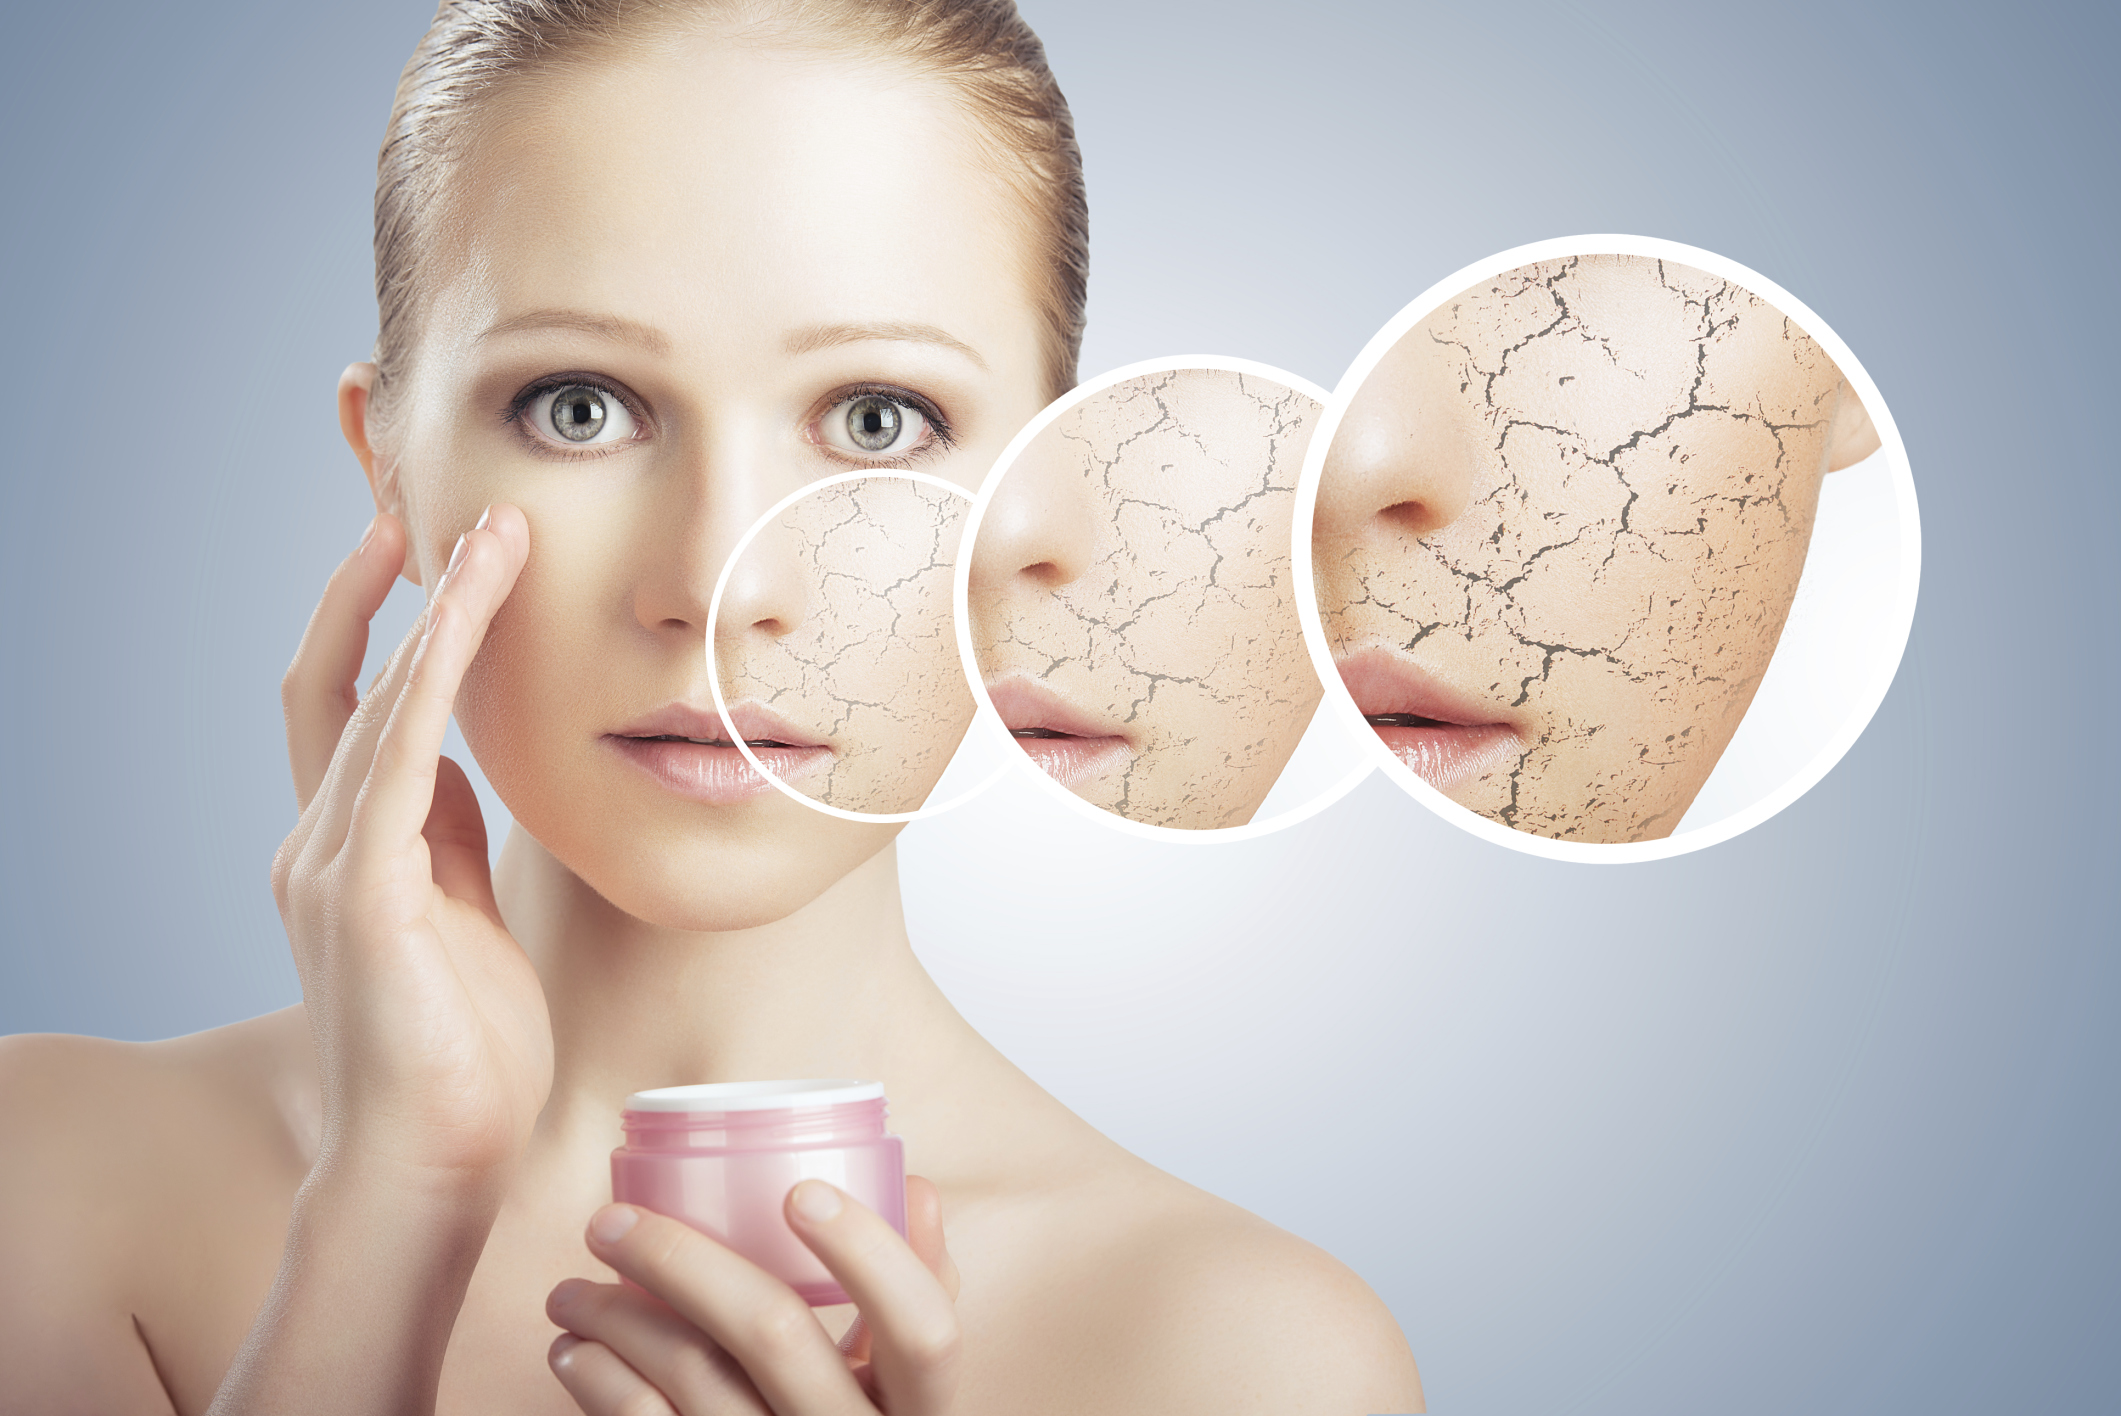 skin care products may cause your